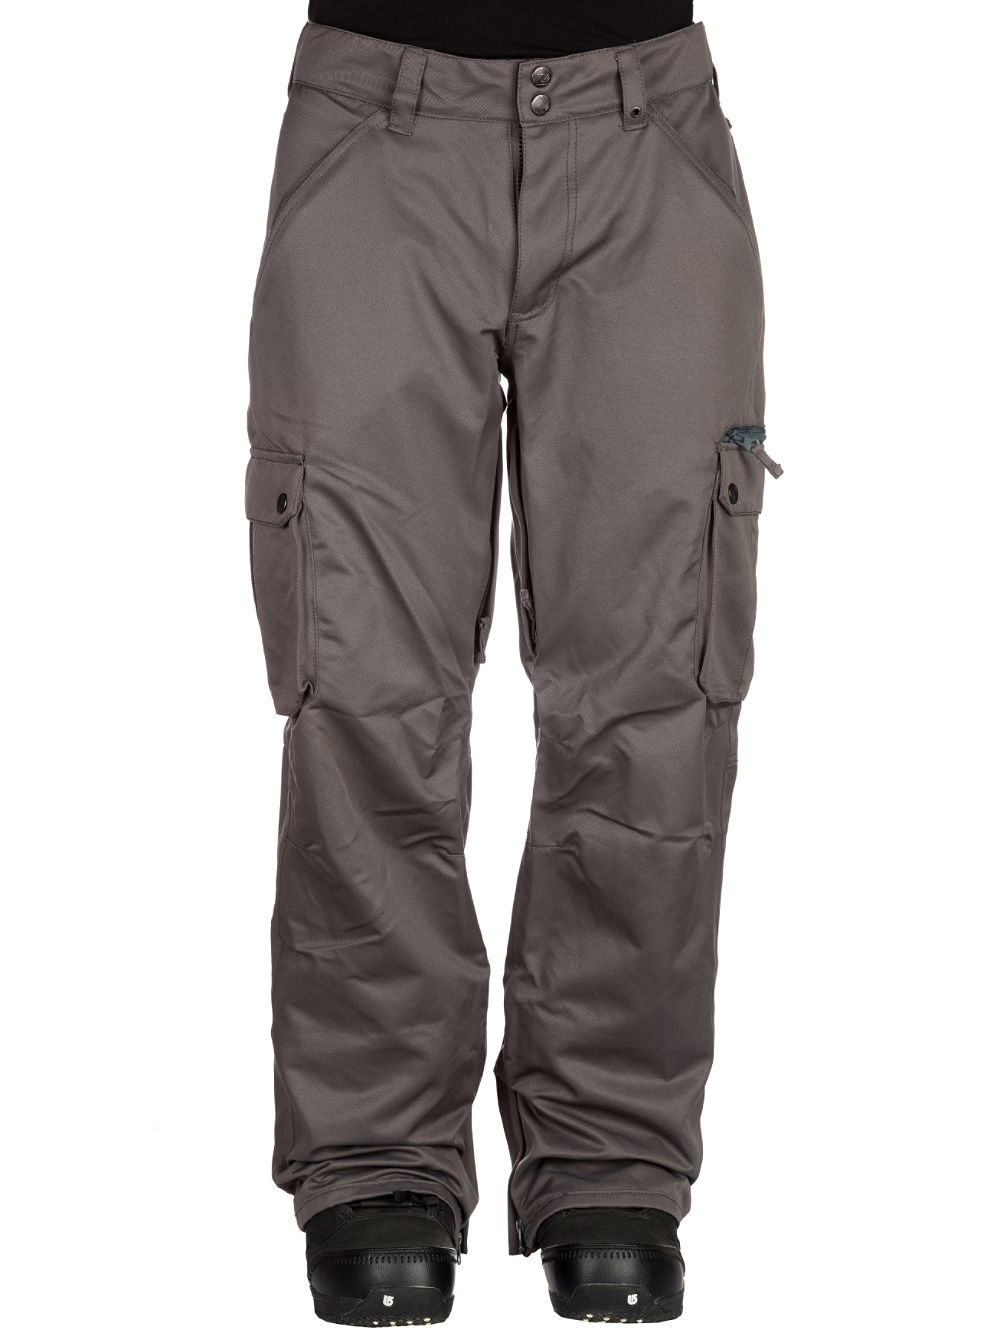 bb8b7abfc4bc4 Buy Aperture Alive Cargo 10K Pants online at Blue Tomato